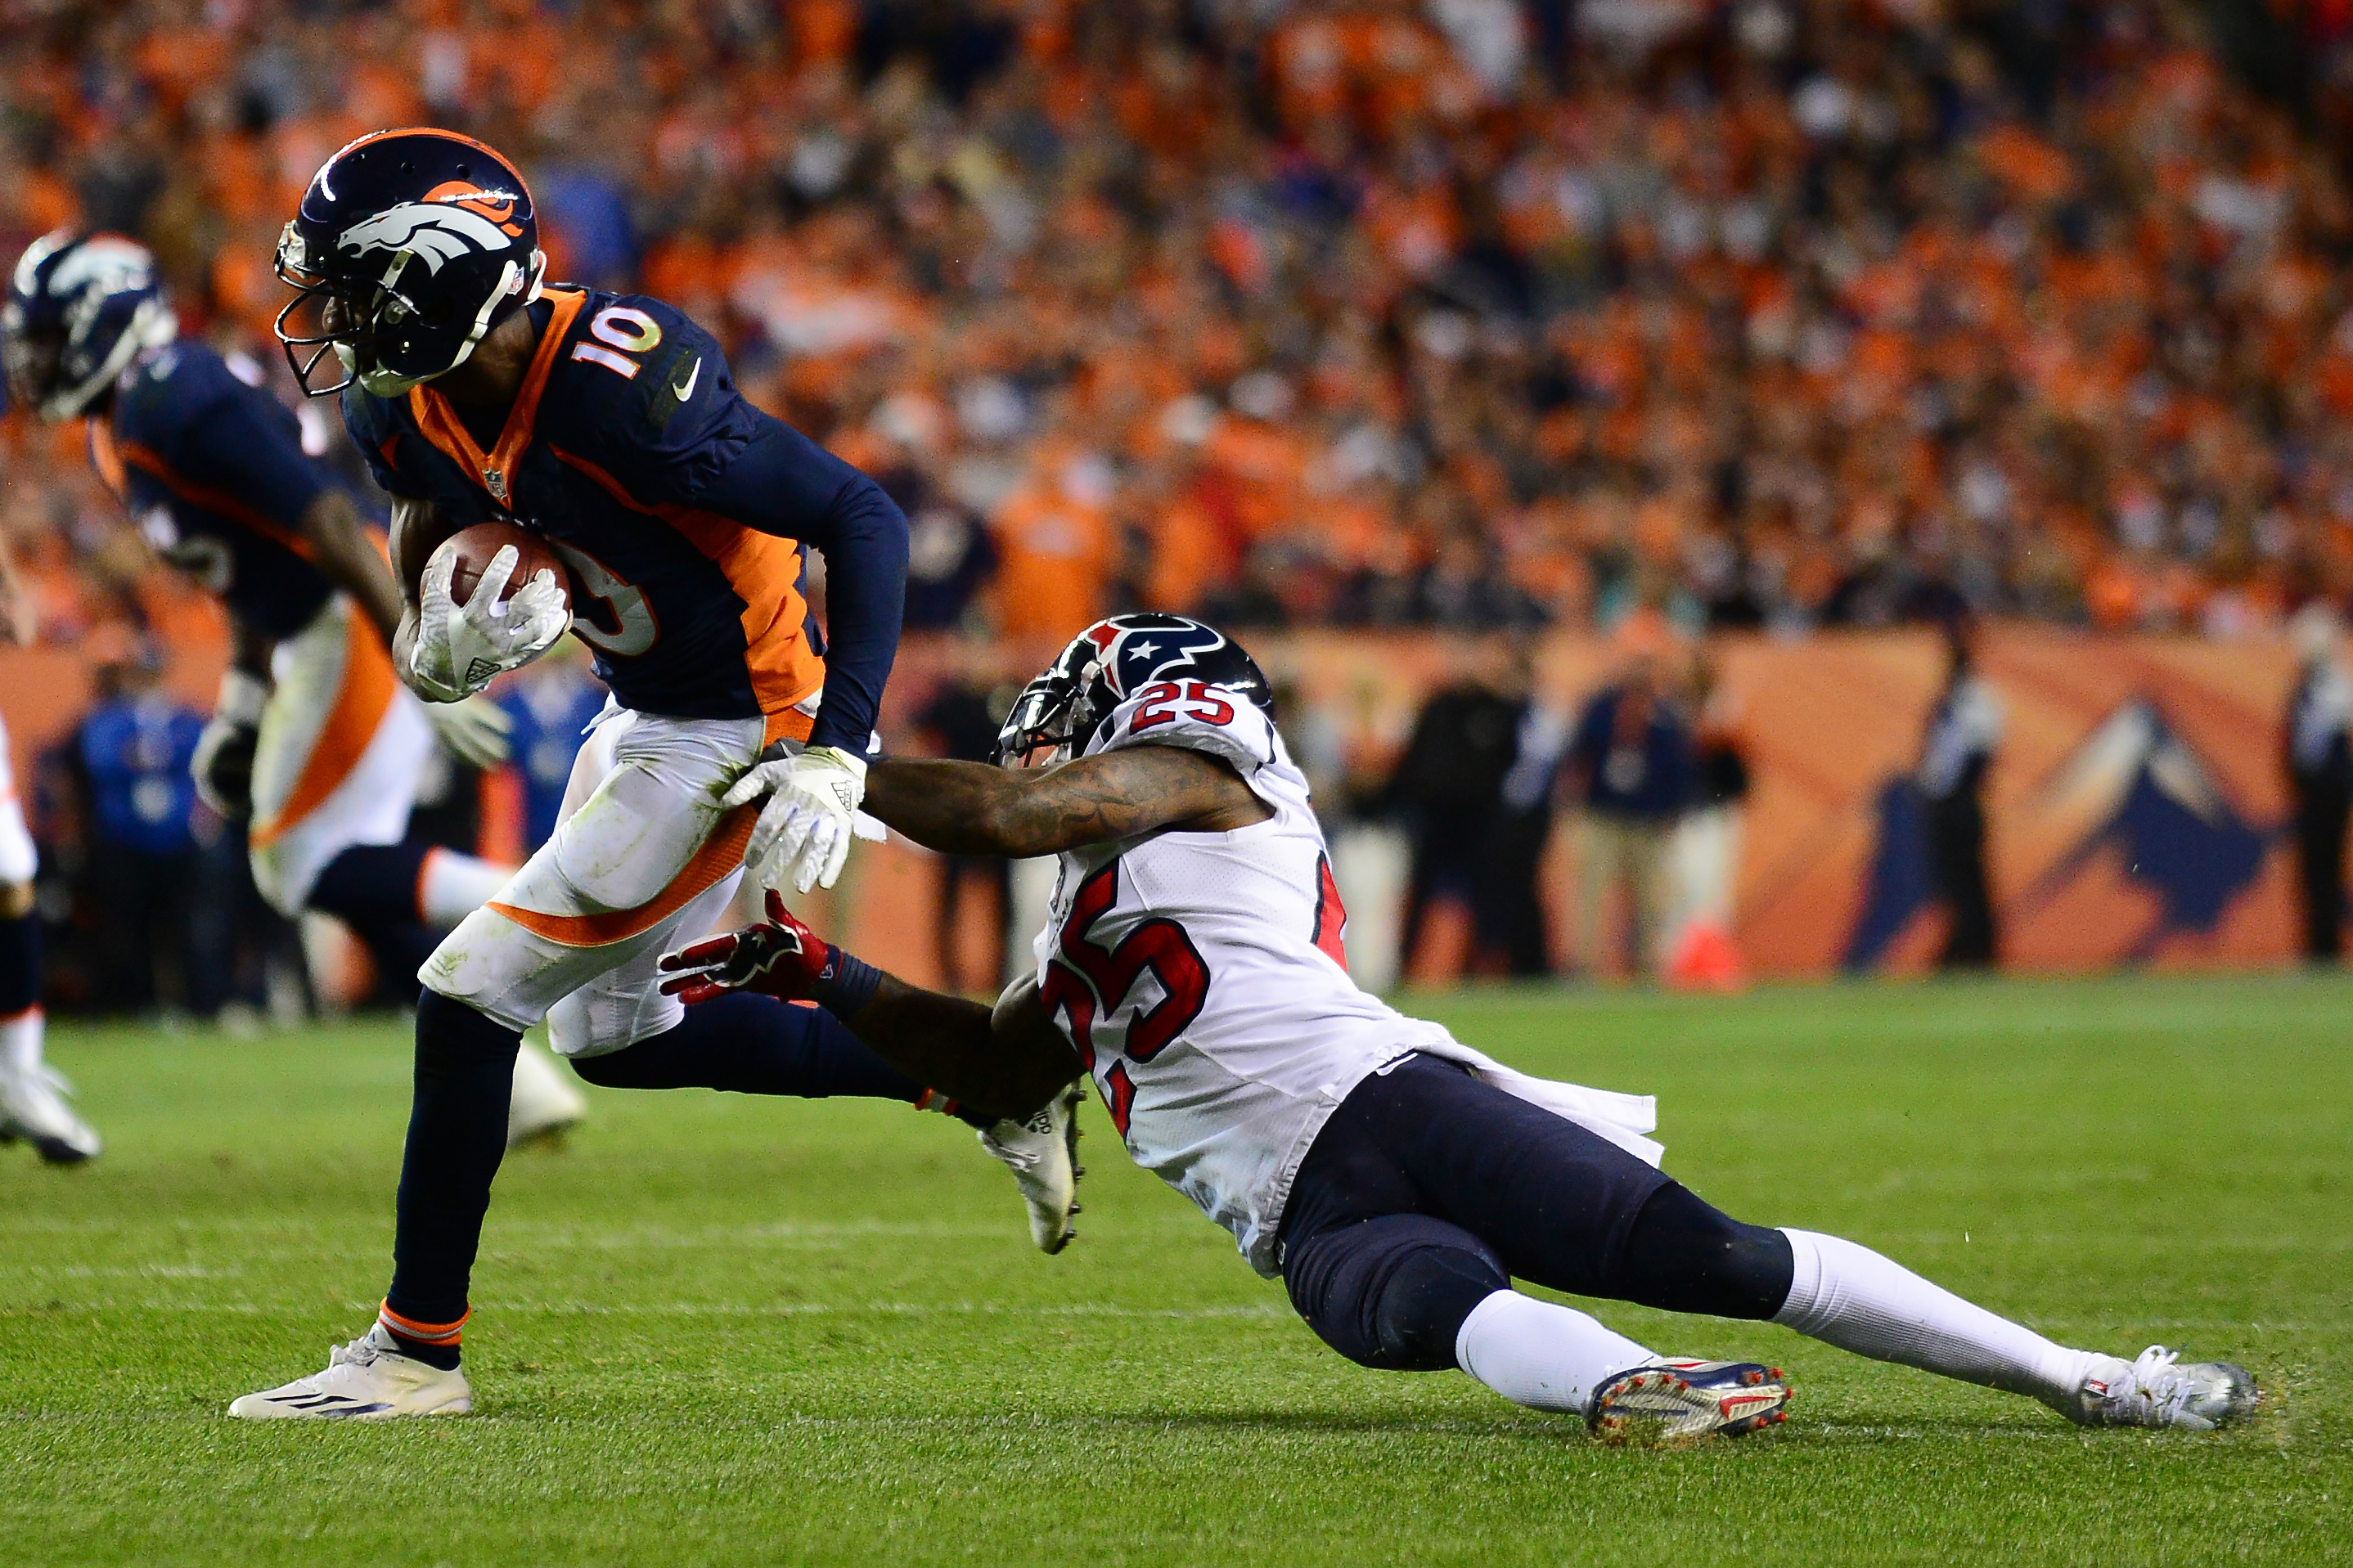 DENVER, CO - OCTOBER 24:  Wide receiver Emmanuel Sanders #10 of the Denver Broncos makes a catch in the red zone while defended by cornerback Kareem Jackson #25 of the Houston Texans at Sports Authority Field at Mile High on October 24, 2016 in Denver, Colorado. (Photo by Dustin Bradford/Getty Images)